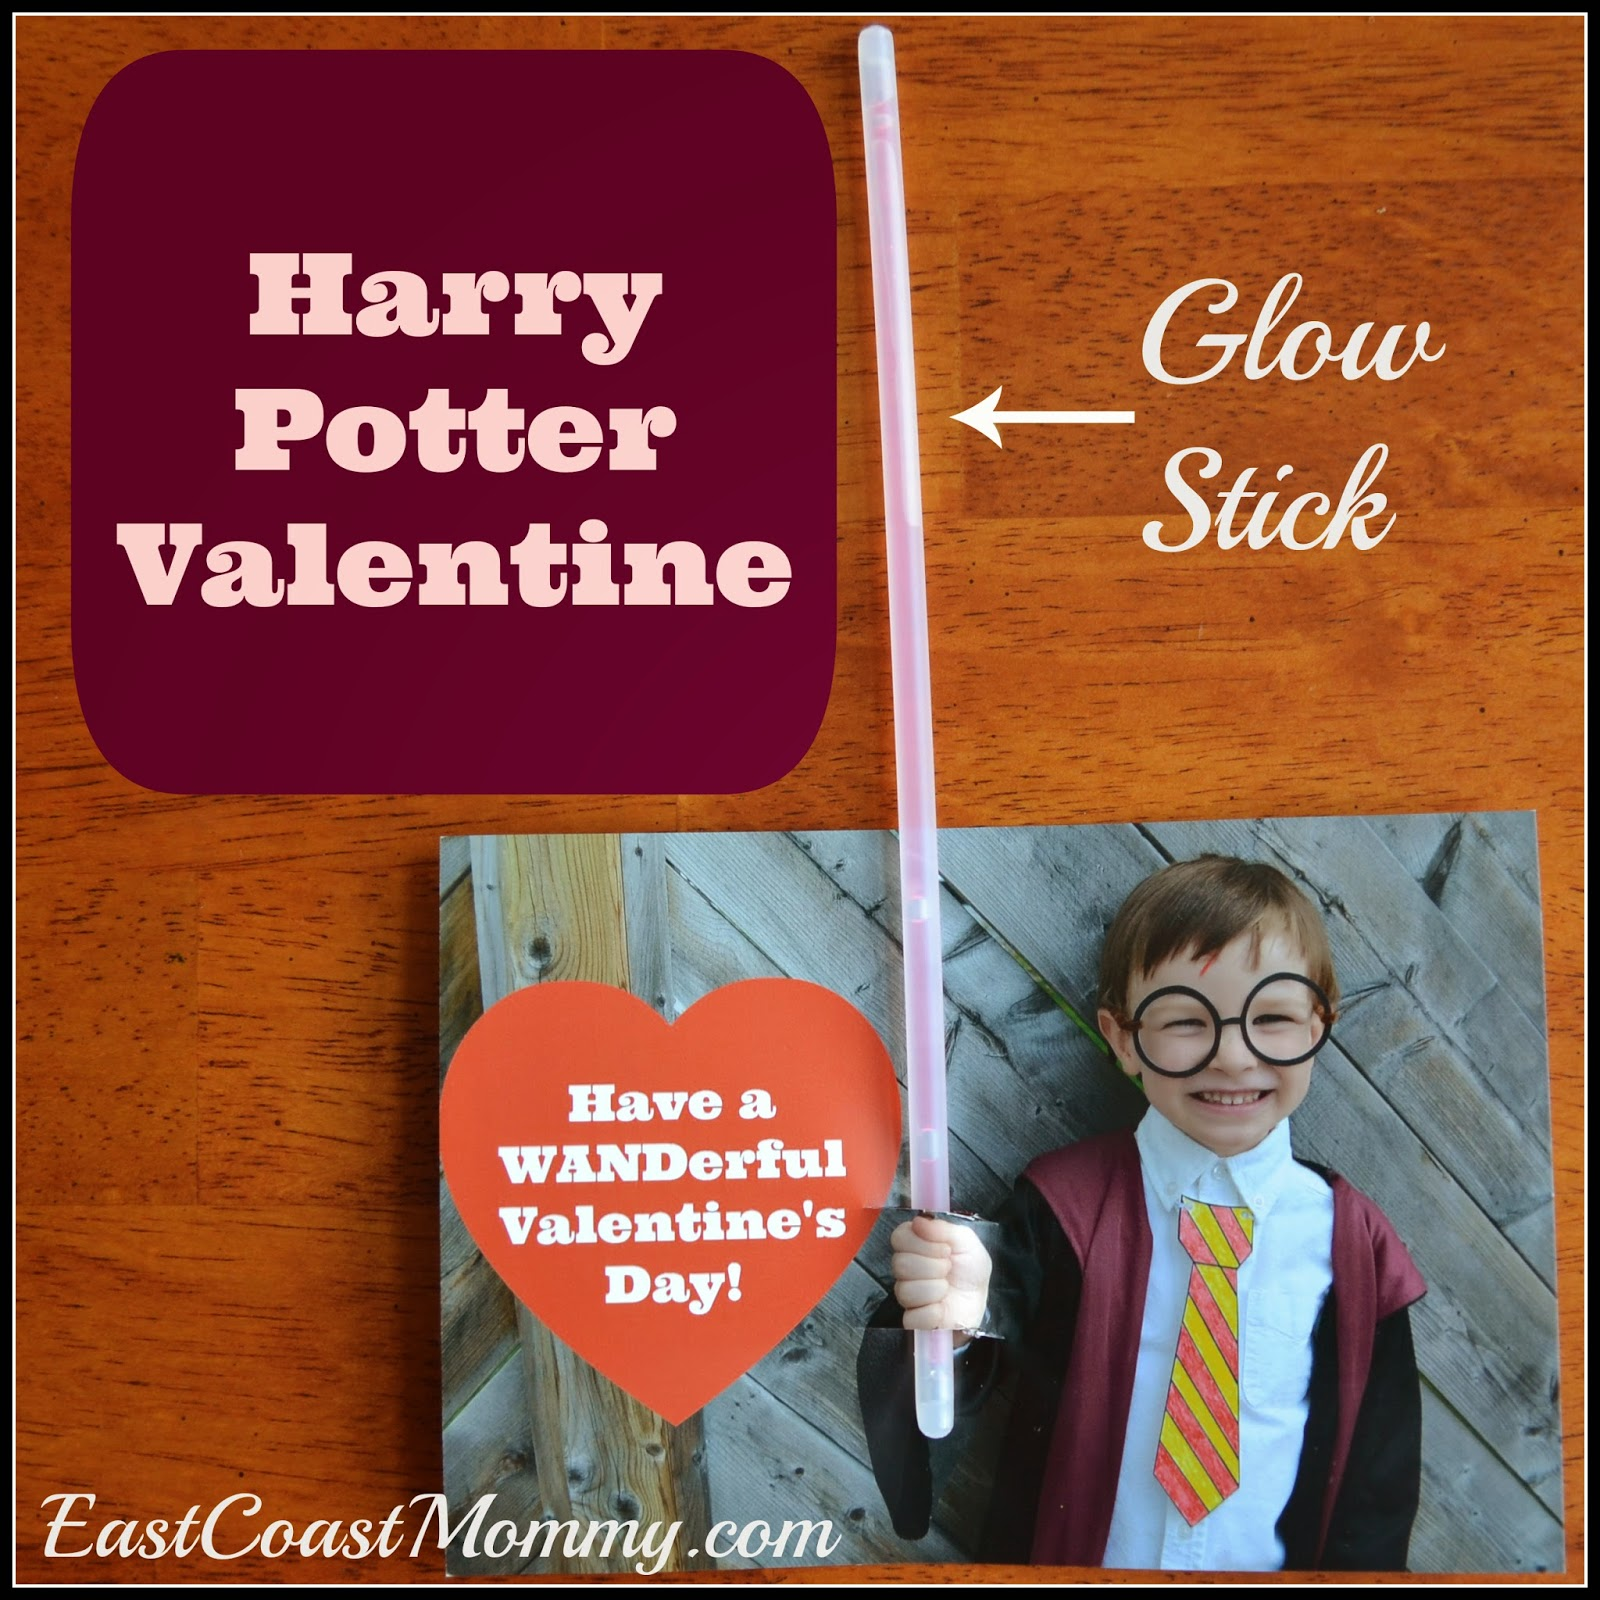 To Make This Valentine, I Took A Picture Of My Son Dressed As Harry Potter  With His Hand Sticking Out In Front Of Him, And I Added A Valentineu0027s Day  ...